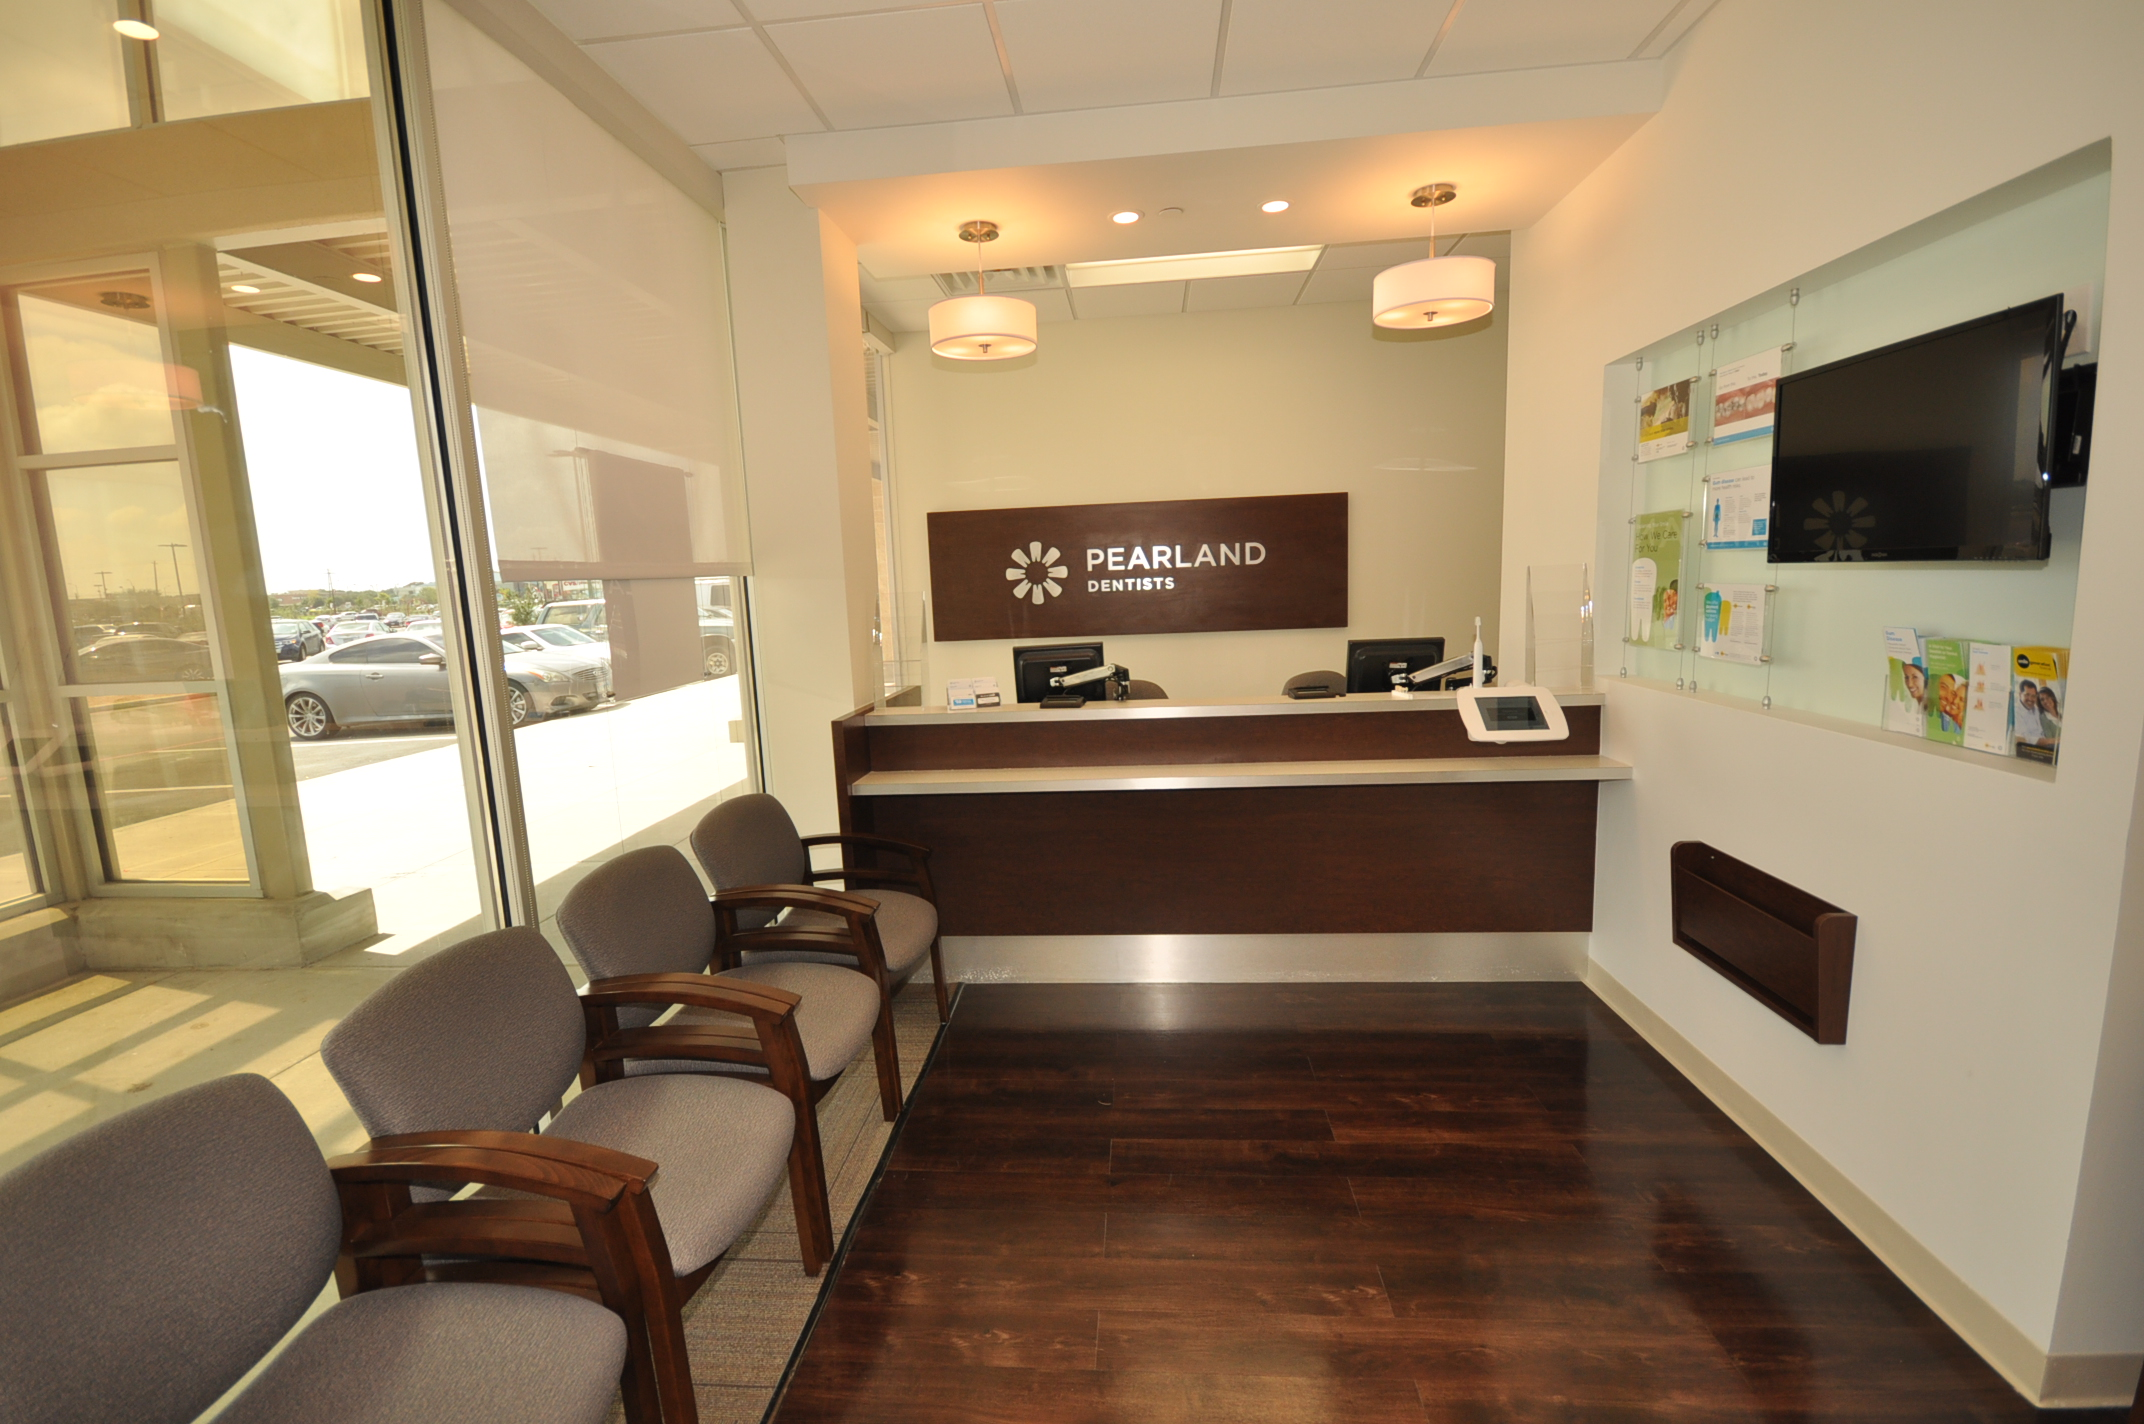 Pearland Dentists opened its doors to the Pearland community in August 2014.